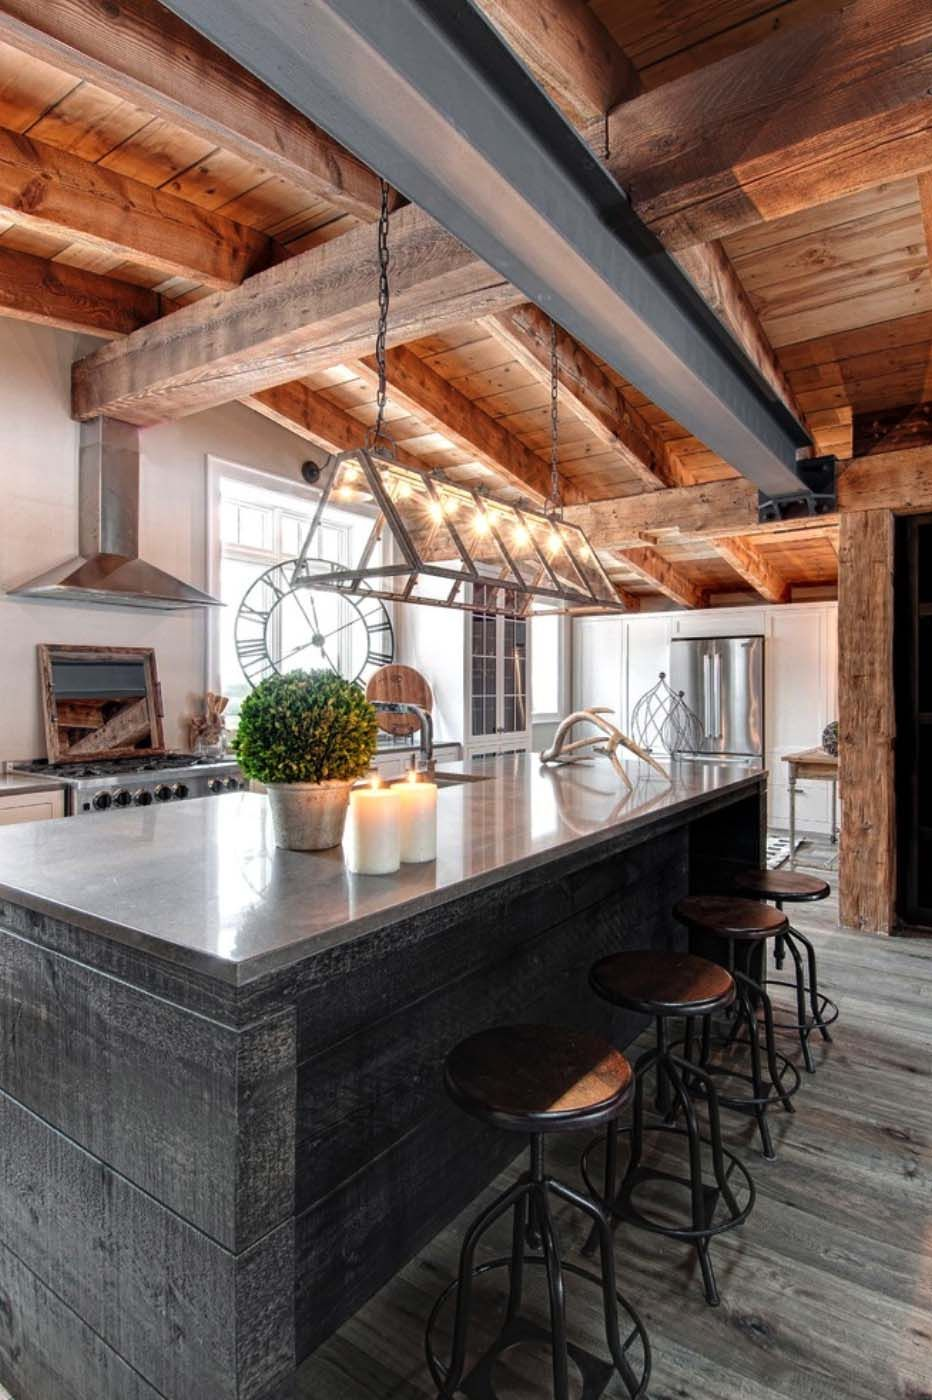 Luxury canadian home reveals splendid rustic modern for Modern rustic design definition